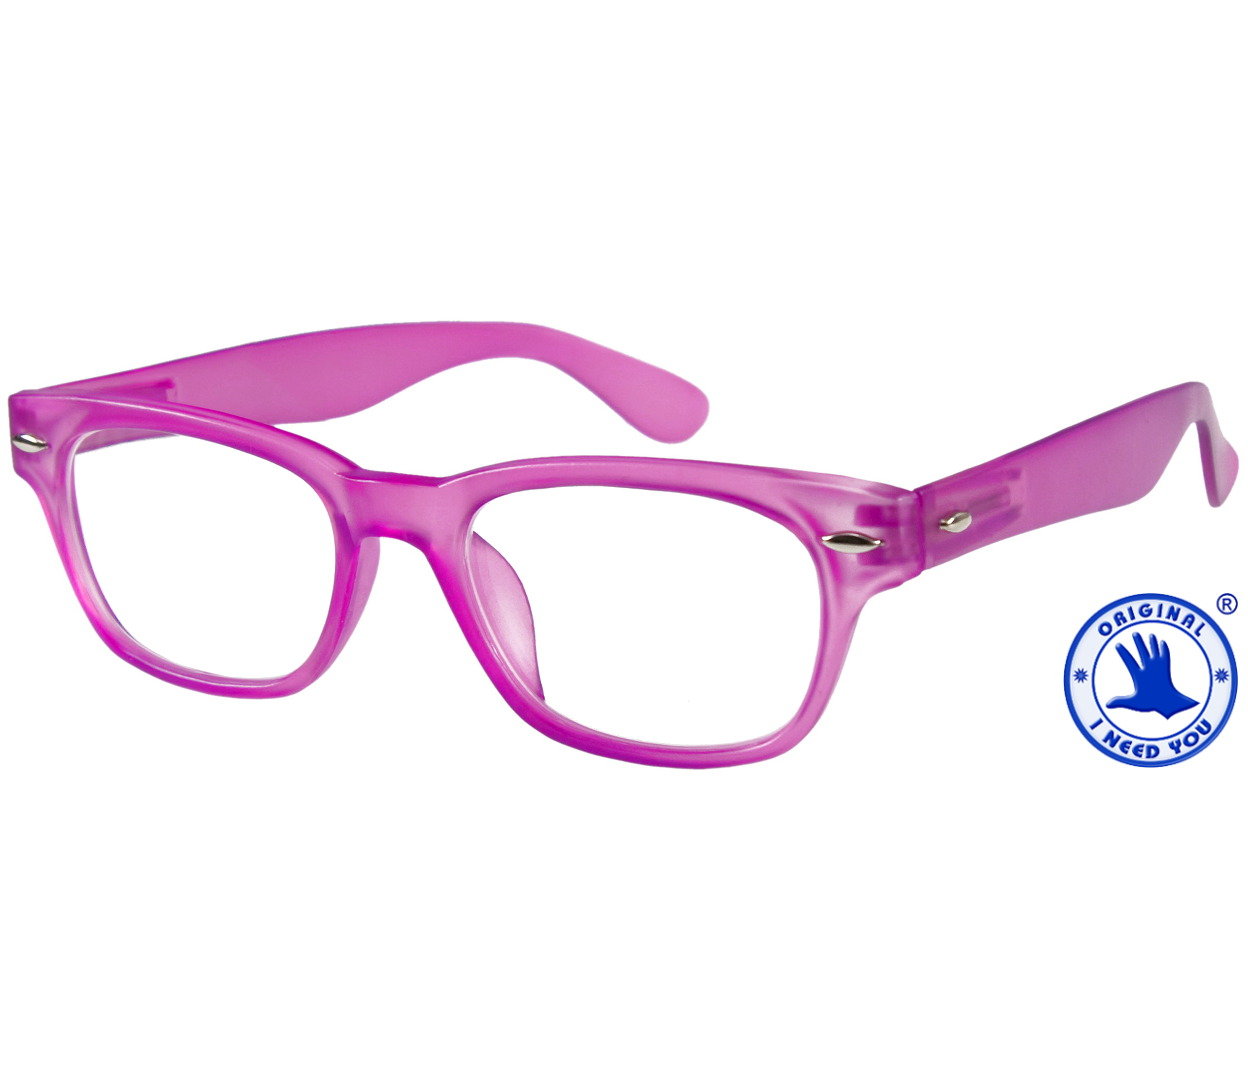 Main Image (Angle) - Woody (Pink) Retro Reading Glasses